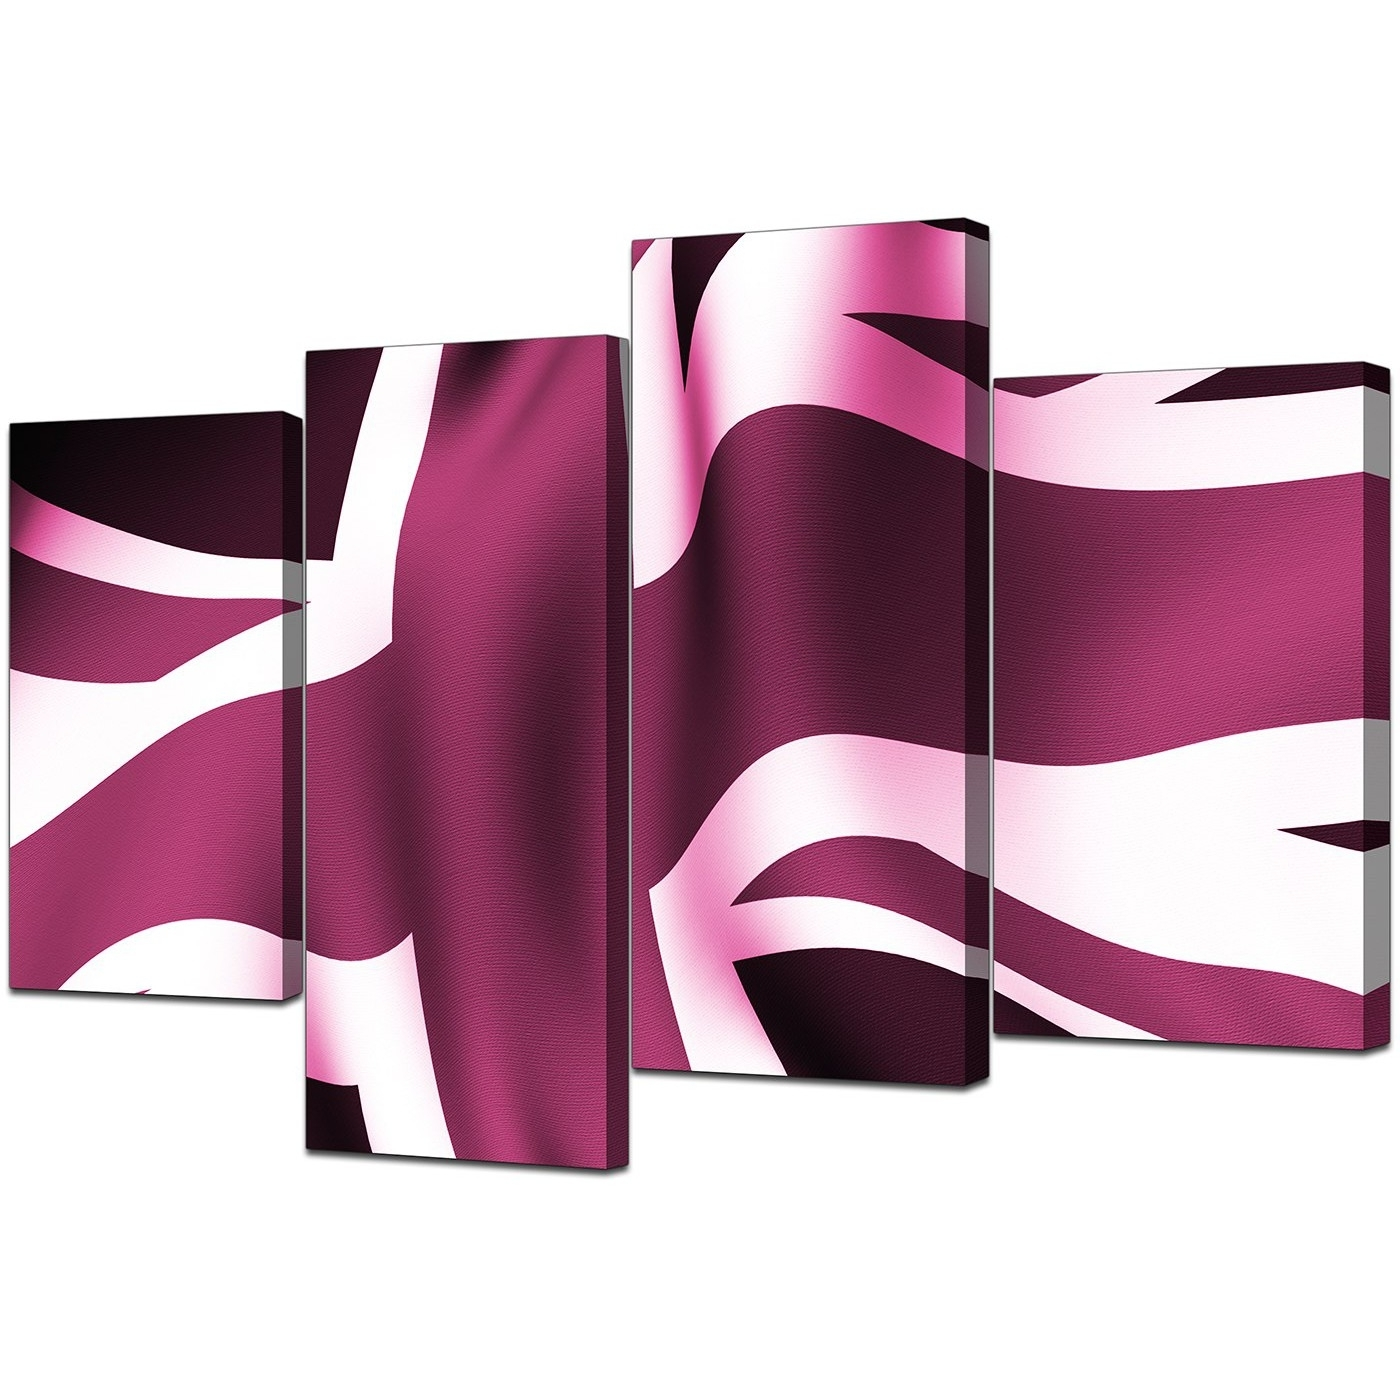 Union Jack Canvas Wall Art Within Recent Modern Union Jack Canvas Prints In Plum – For Bedroom (View 11 of 15)